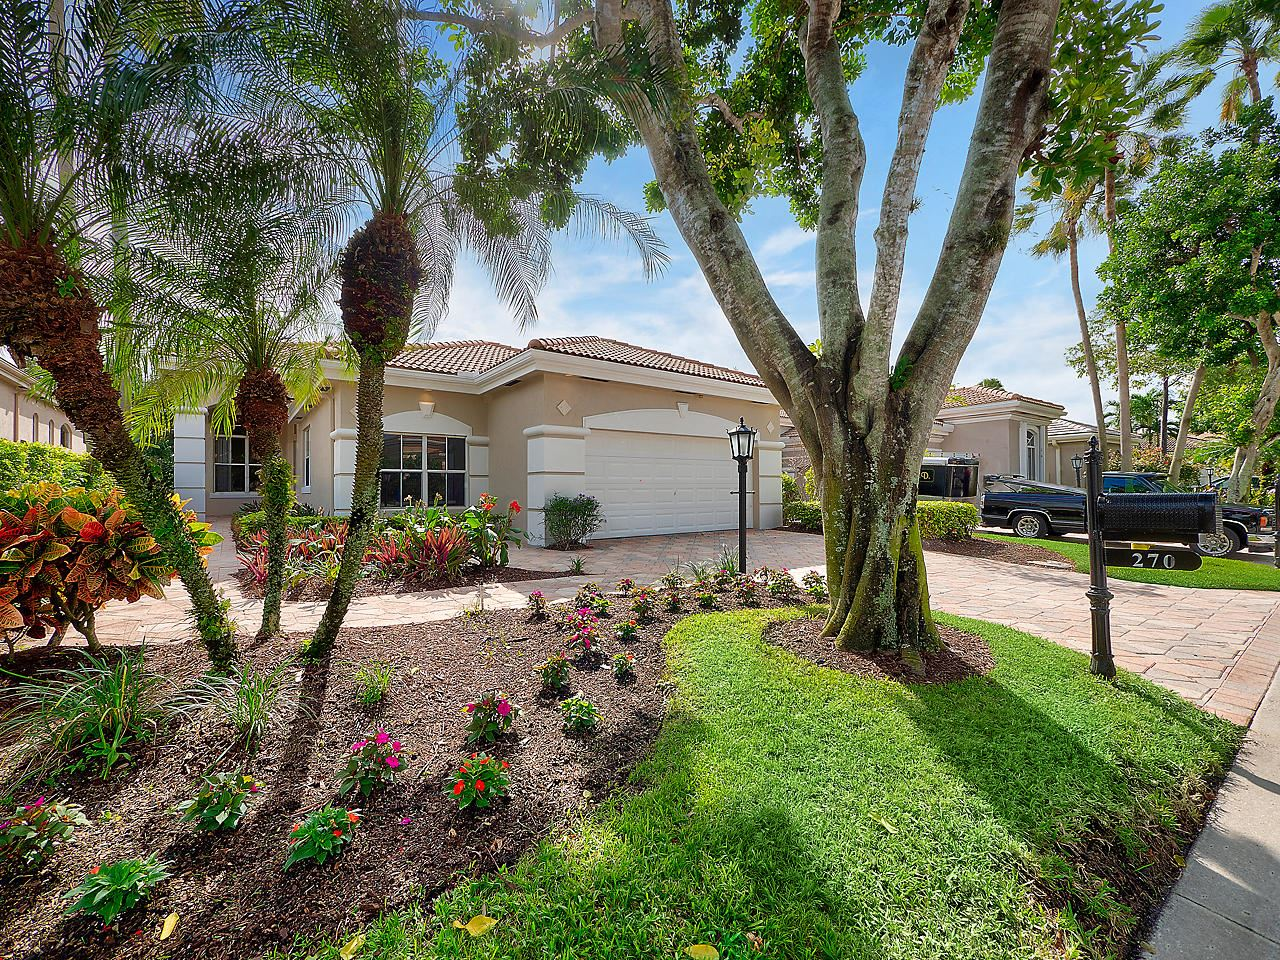 Photo of 270 Isle Way, Palm Beach Gardens, FL 33418 (MLS # RX-10670959)